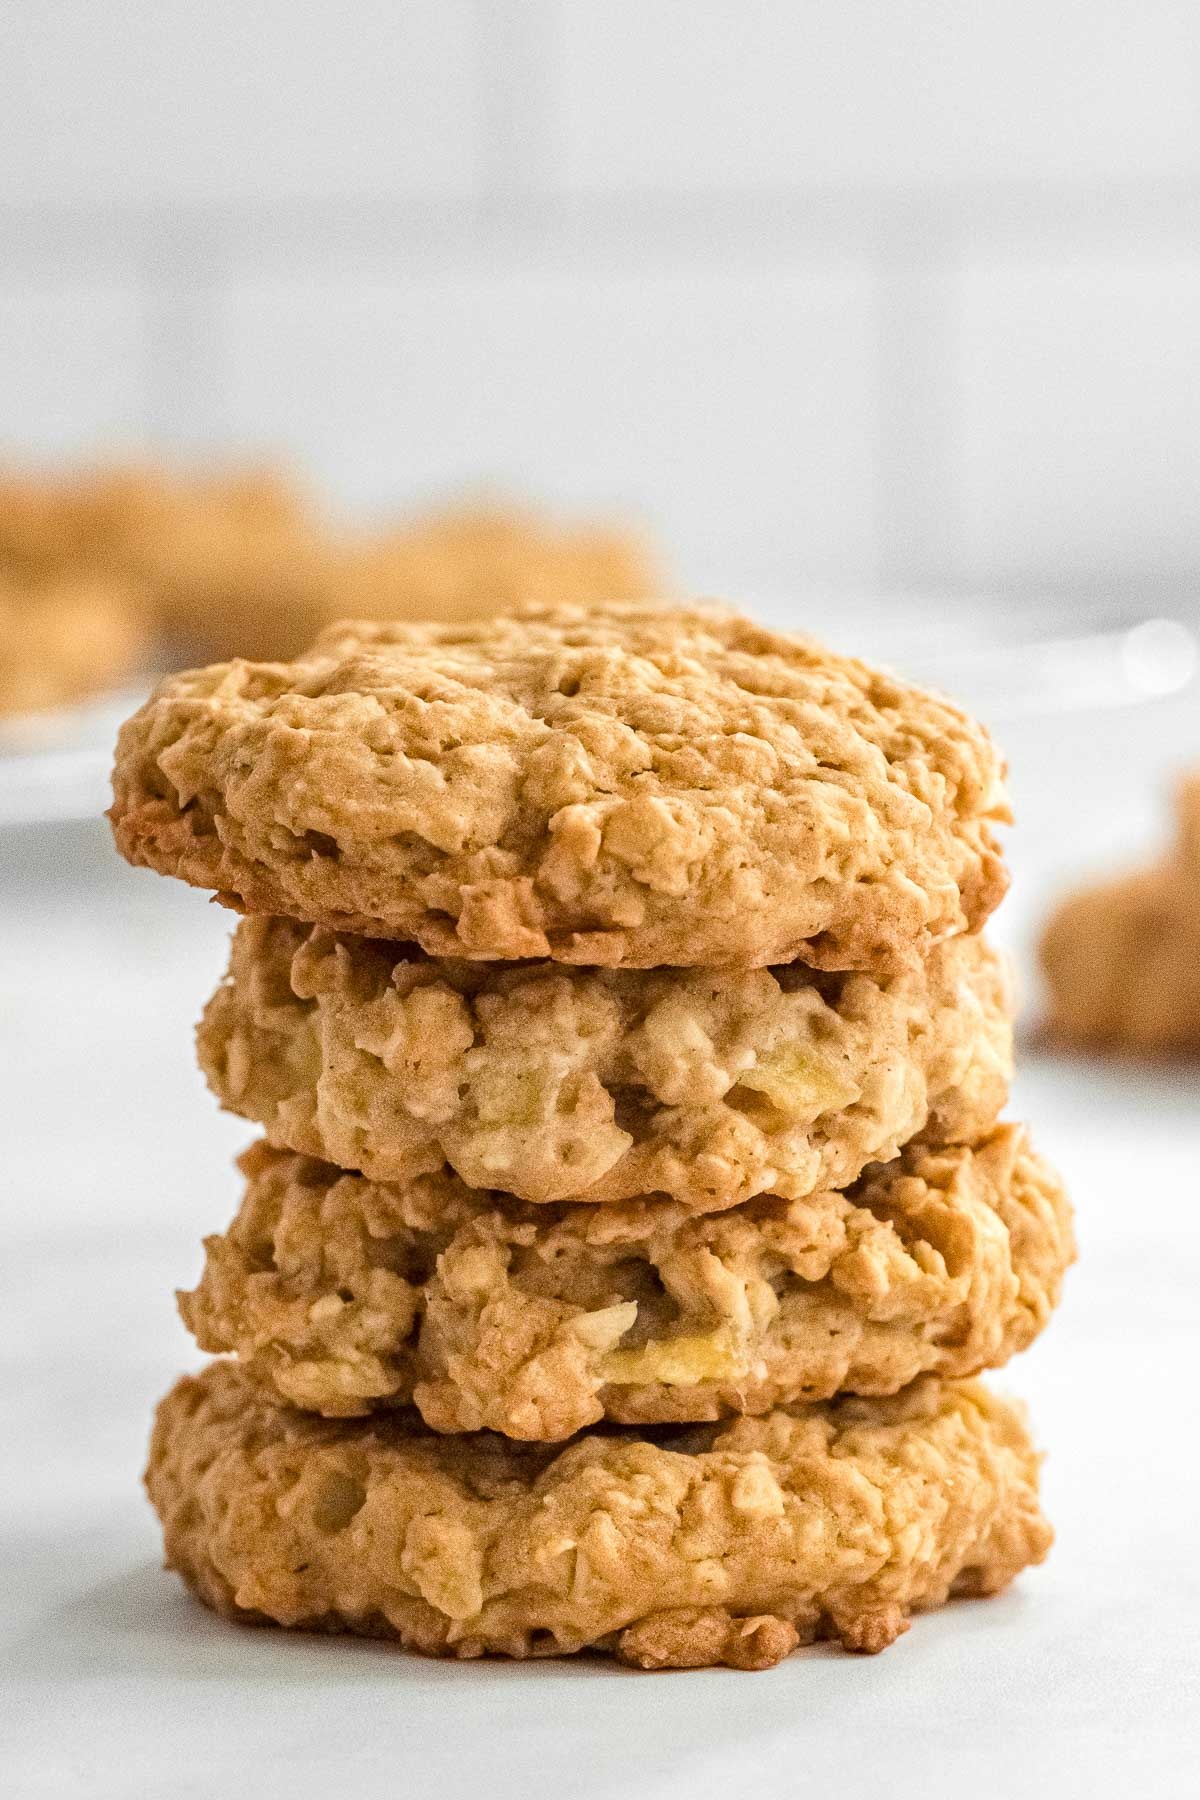 These Apple Pie Oatmeal Cookies are loaded with apples, cinnamon spice and natural sweeteners for a great healthy snack.